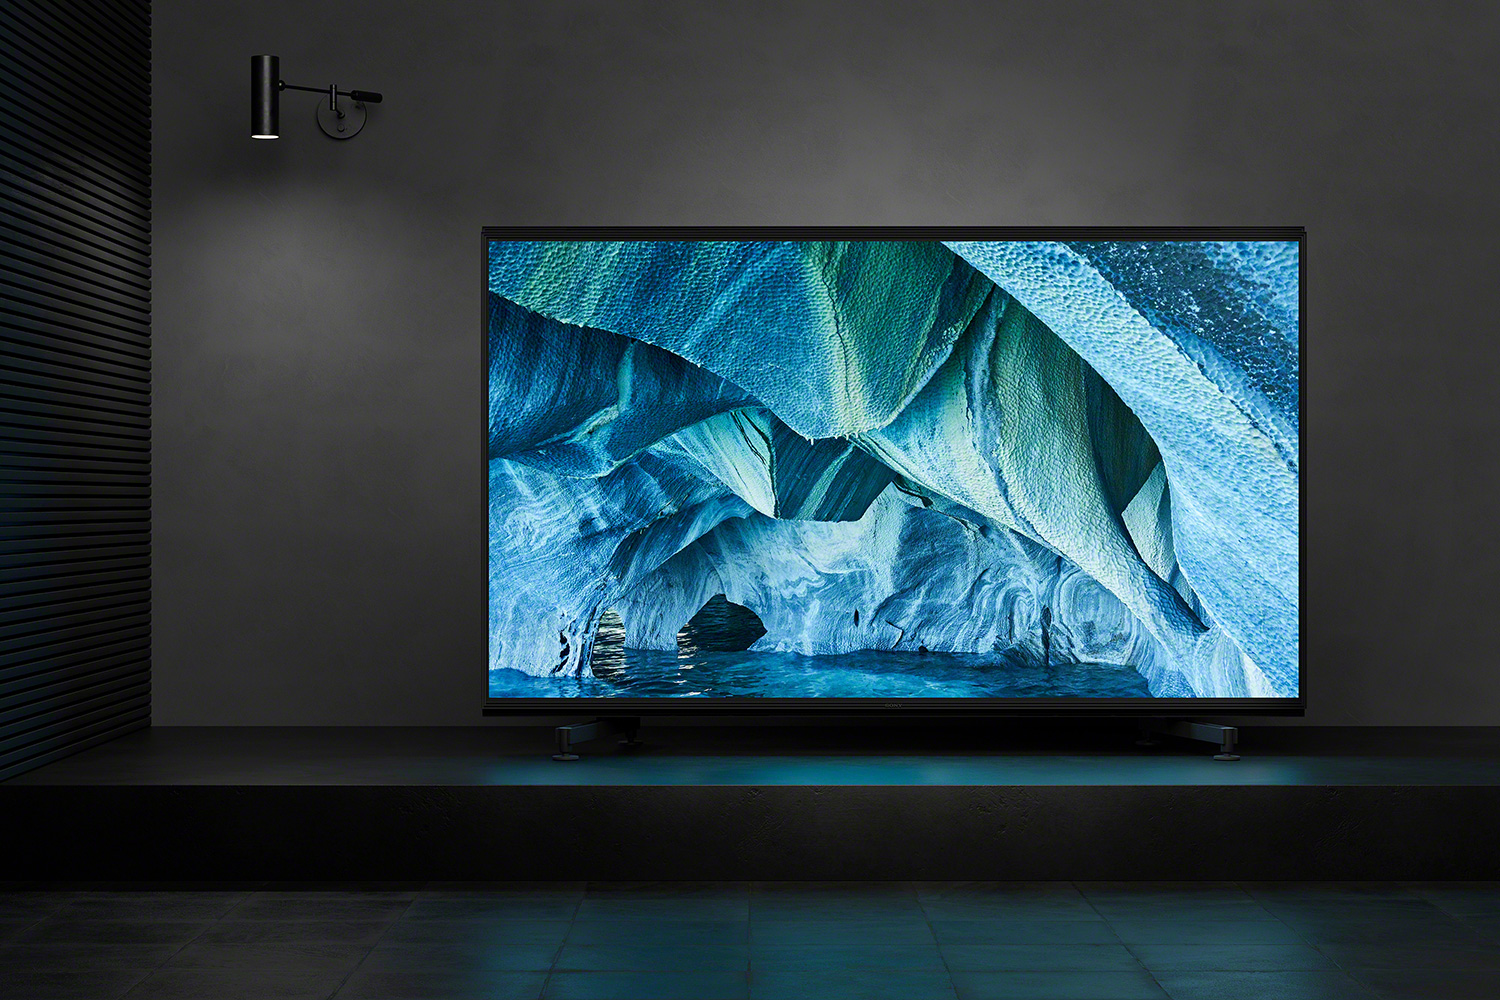 Sony's 2019 TV lineup features 8K resolution and 85-inch screens